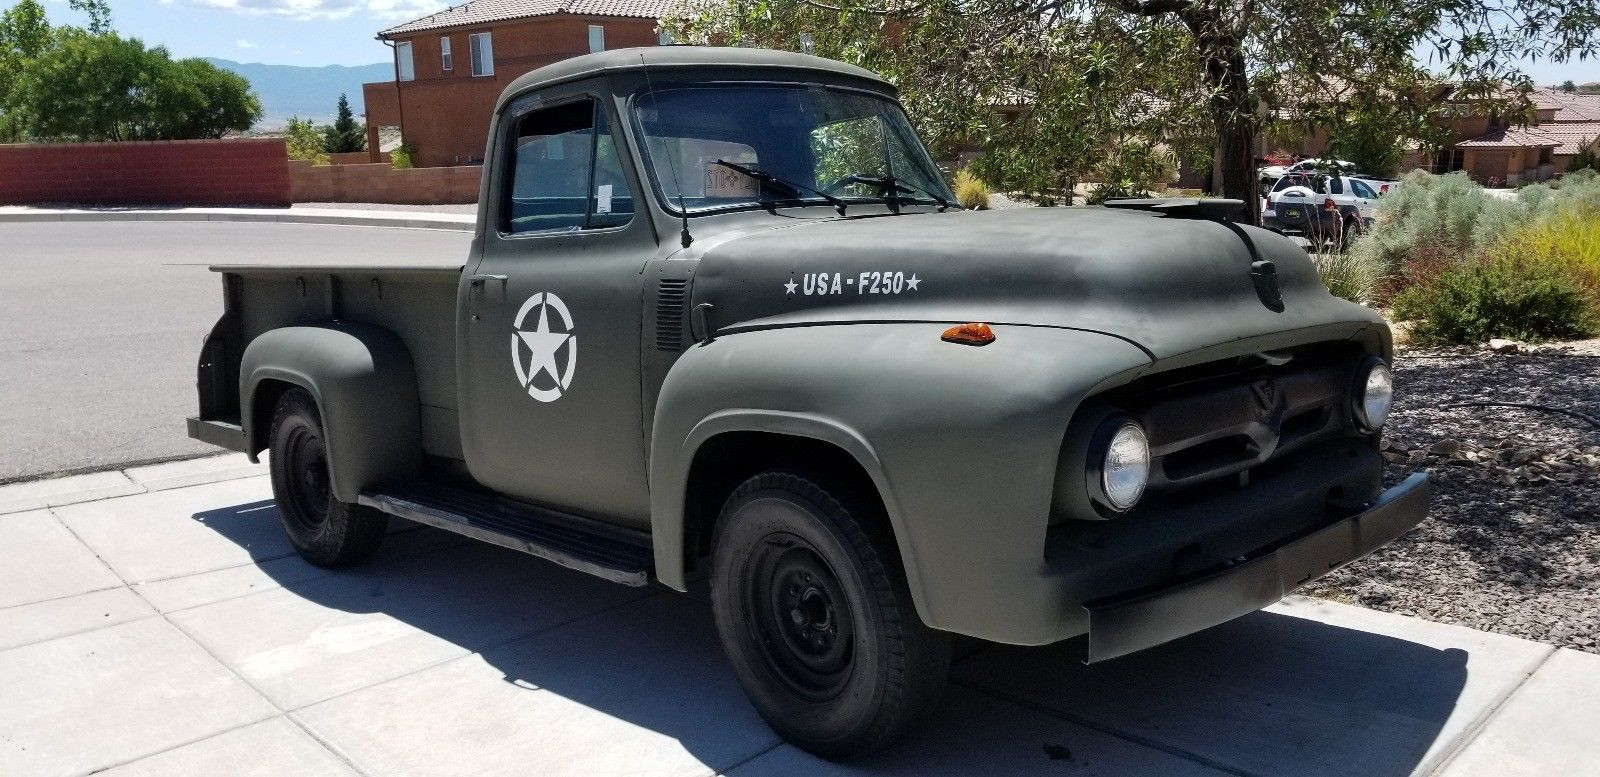 Ford F-250 1955 Military style - MBB Collection